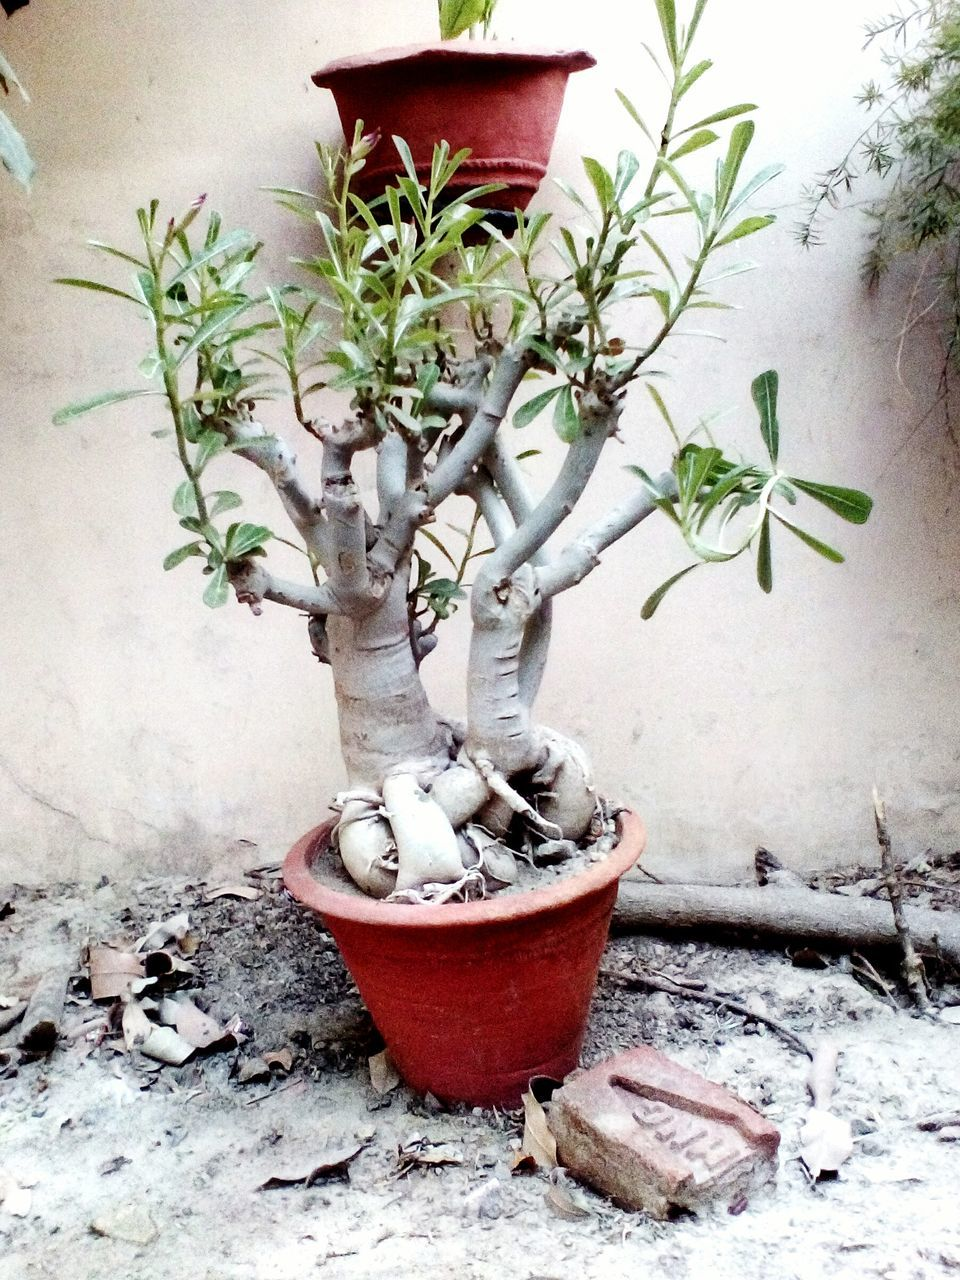 potted plant, plant, growth, bonsai tree, no people, nature, table, leaf, tree, day, indoors, branch, flower, close-up